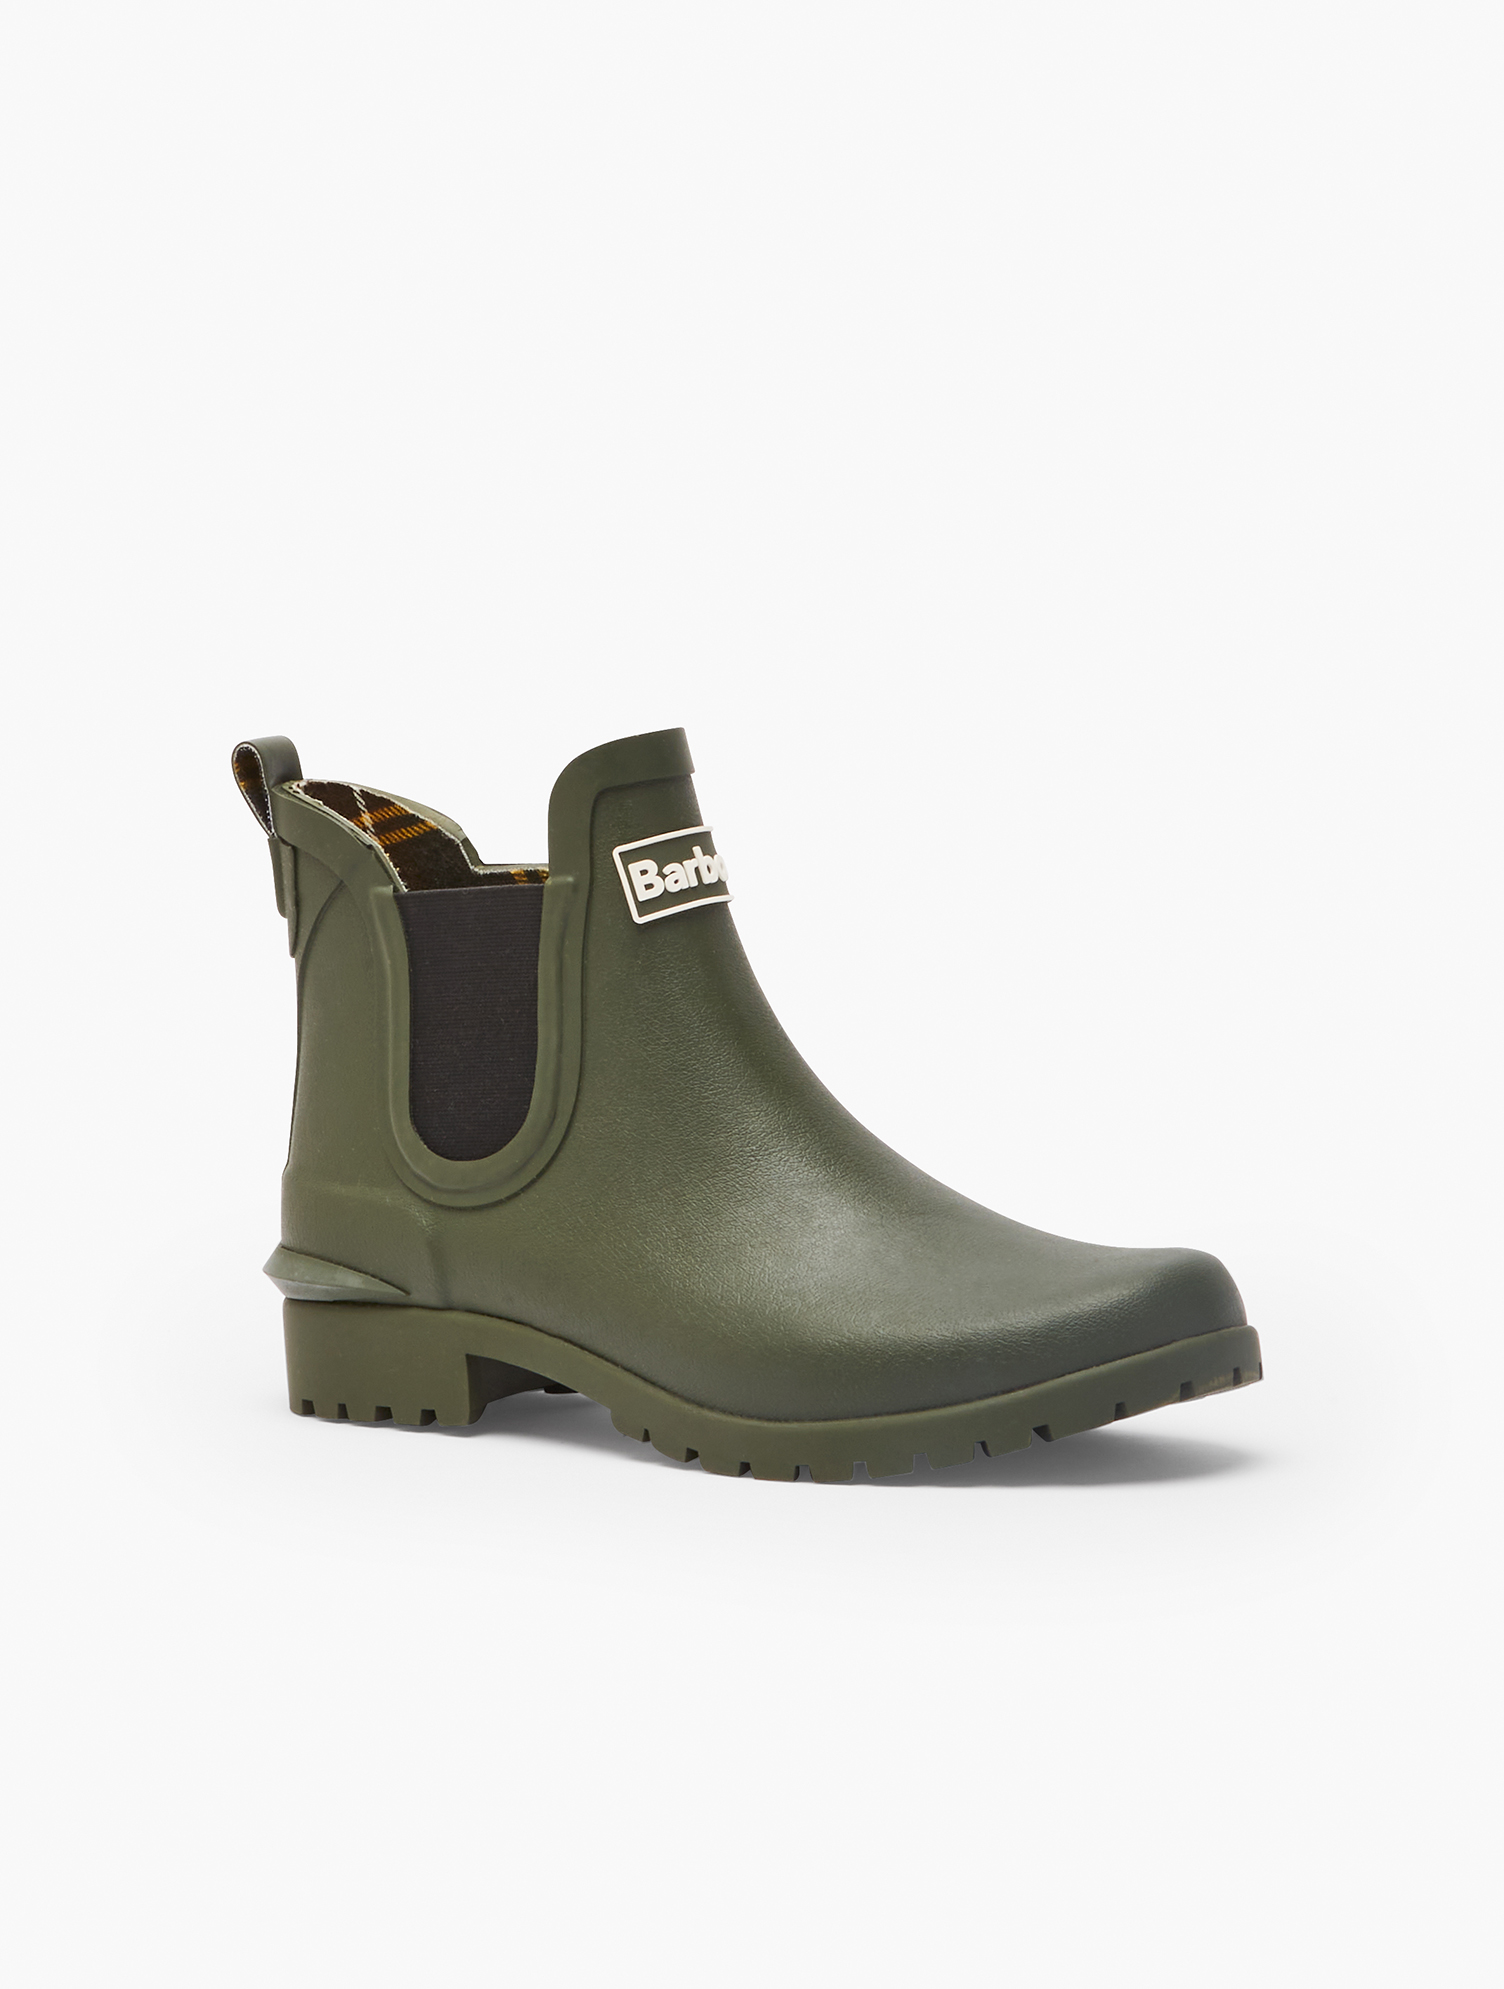 Barbour® Wilton Wellies for Talbots. Tightly waterproofed outside, softly cushioned inside. With easy pull-on loop styling. Features Round toe Waterproof Cushion Insole Material: 100% Rubber Barbour® Wilton Wellington Rain Boots - Olive - 11M Talbots